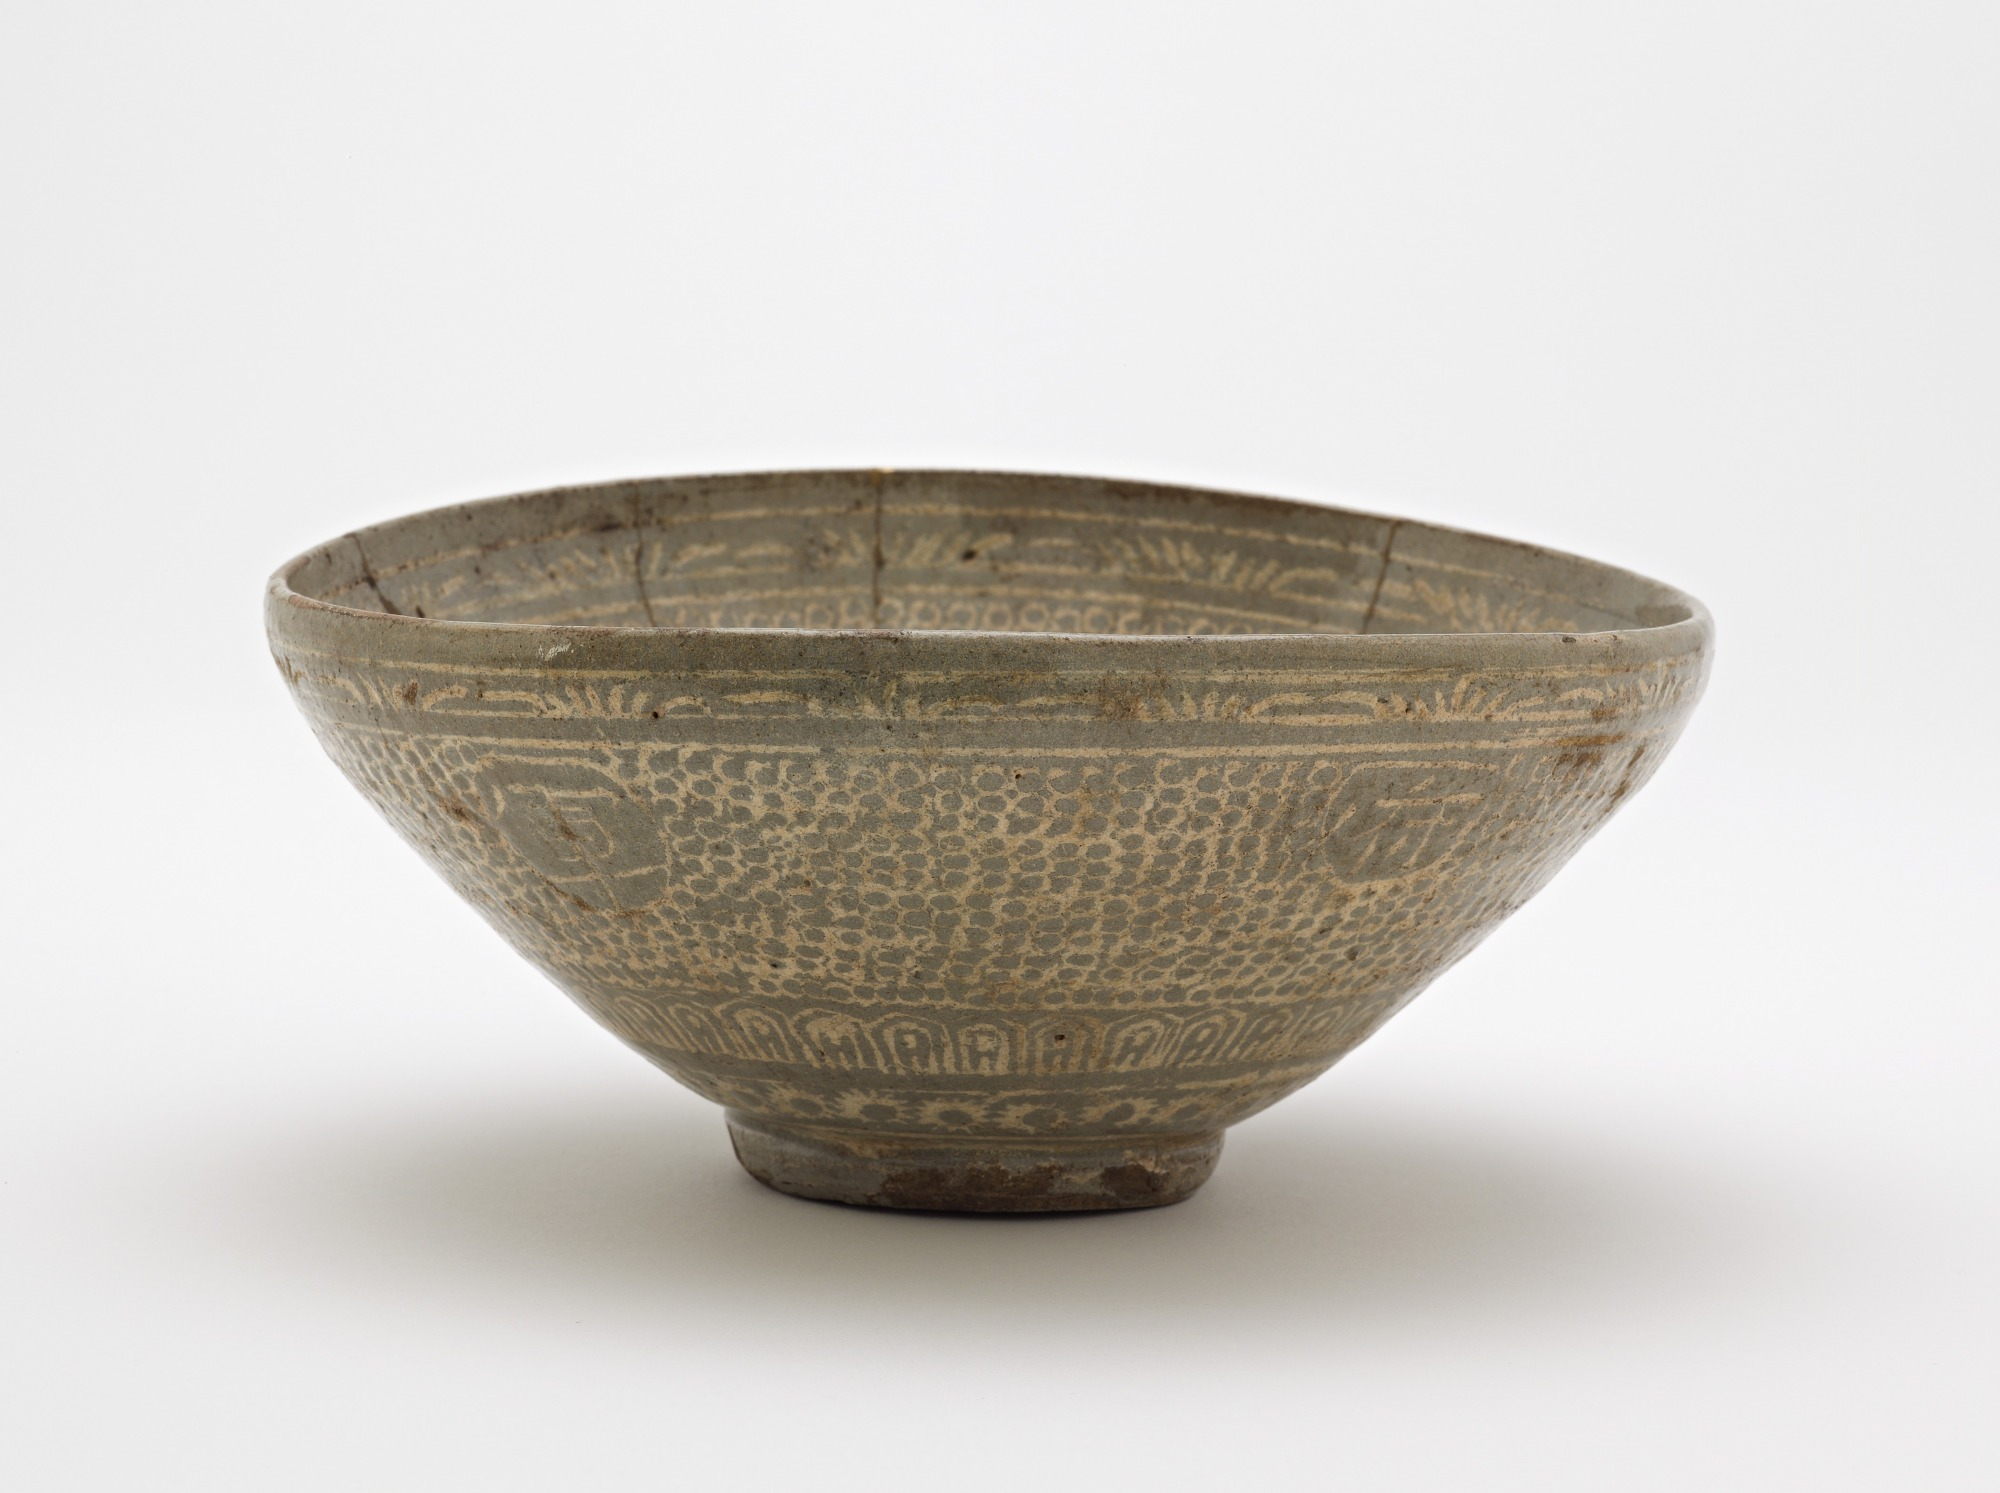 Bowl with inlaid inscription